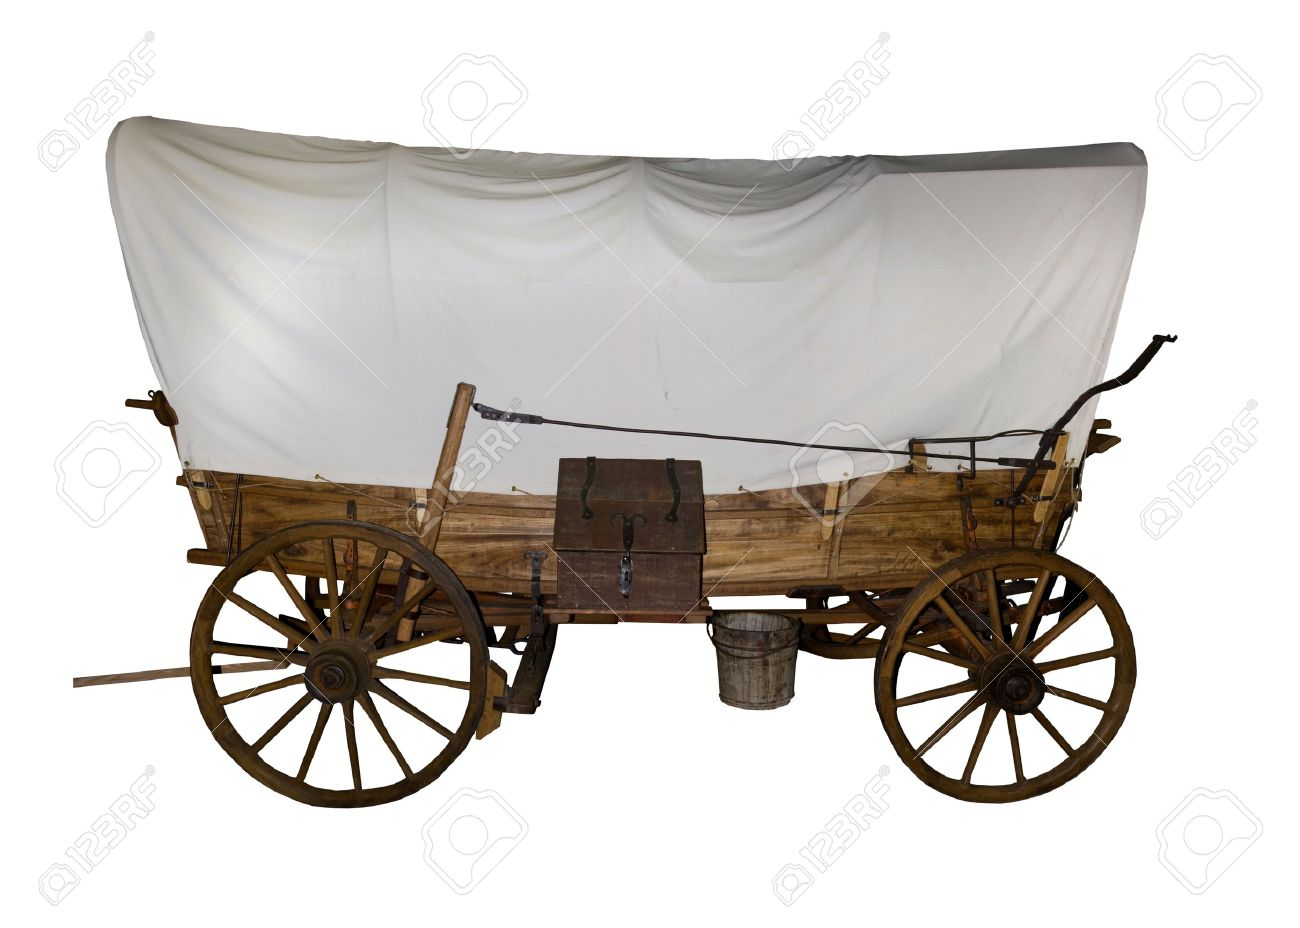 Oregon Trail Covered Wagon Used By The Pioneers Stock Photo, Picture ...